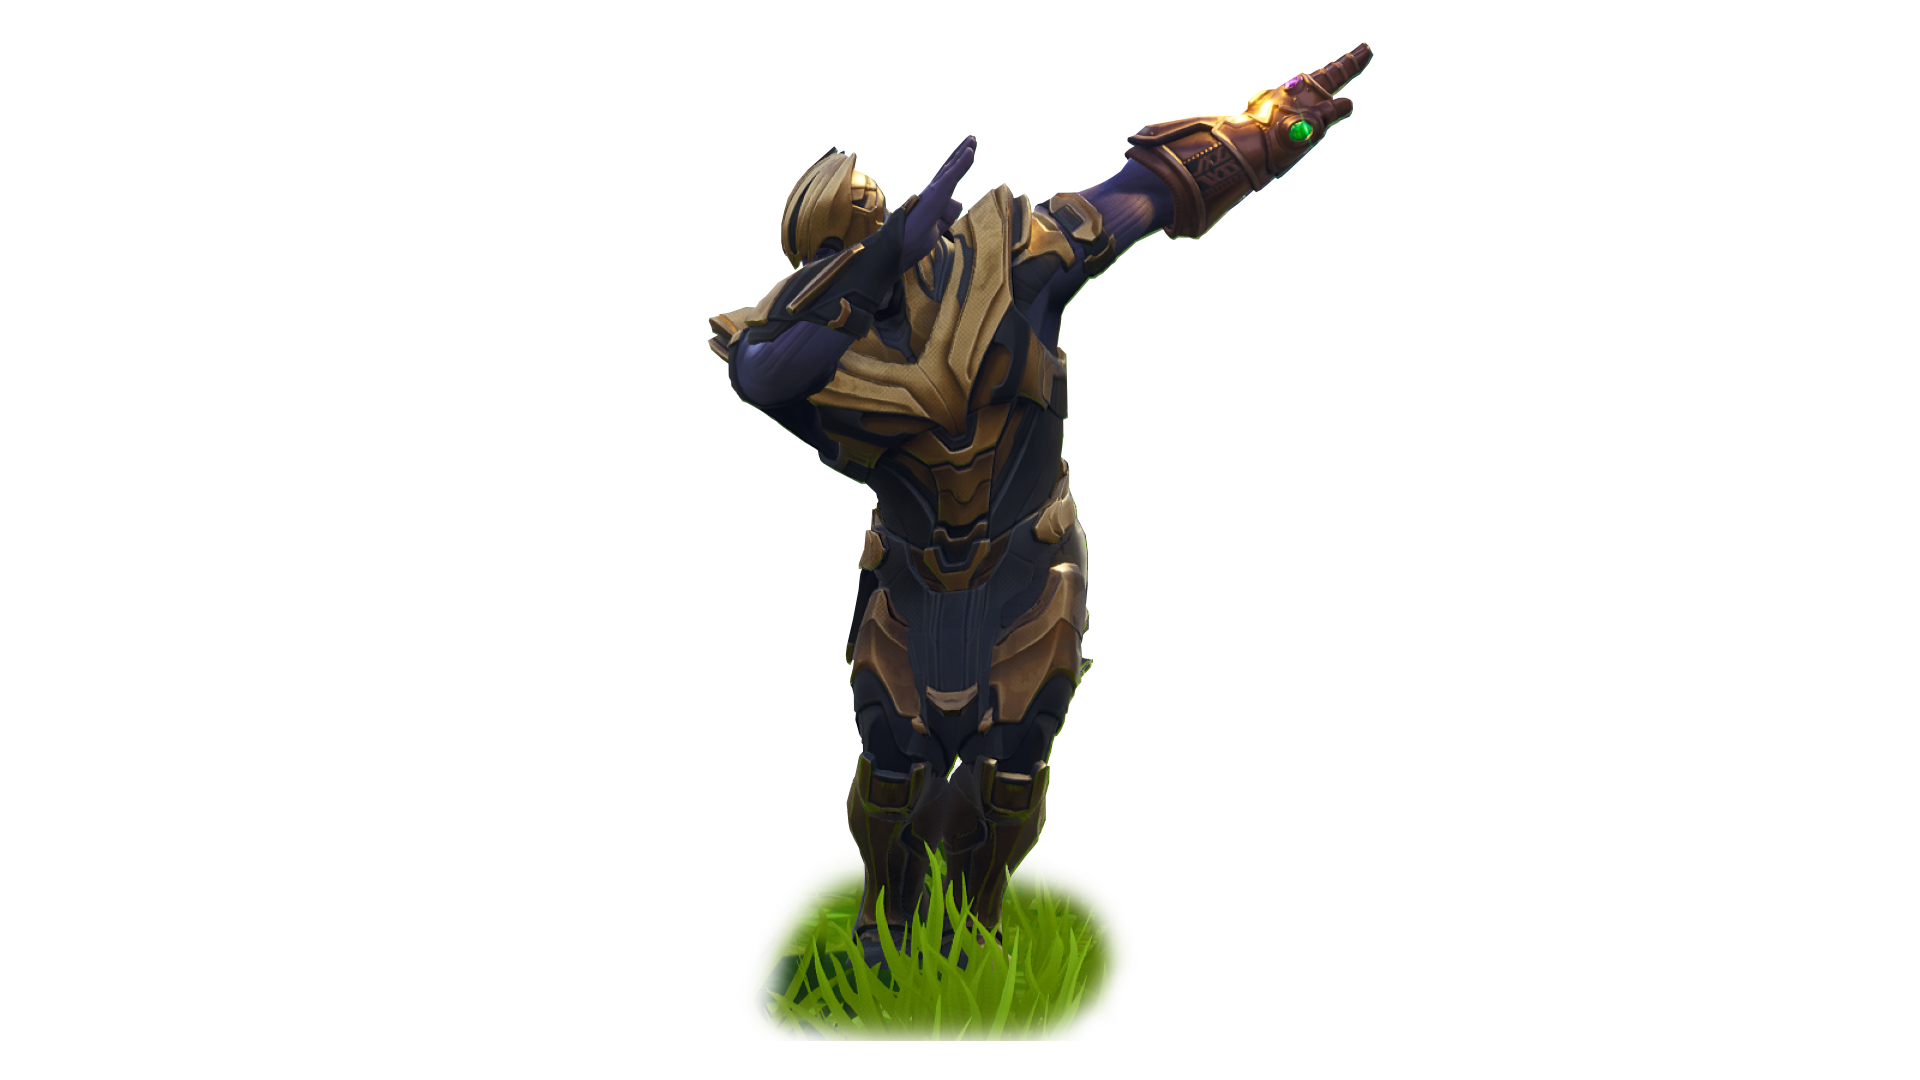 Thanos clipart animated. Fortnite dab png image